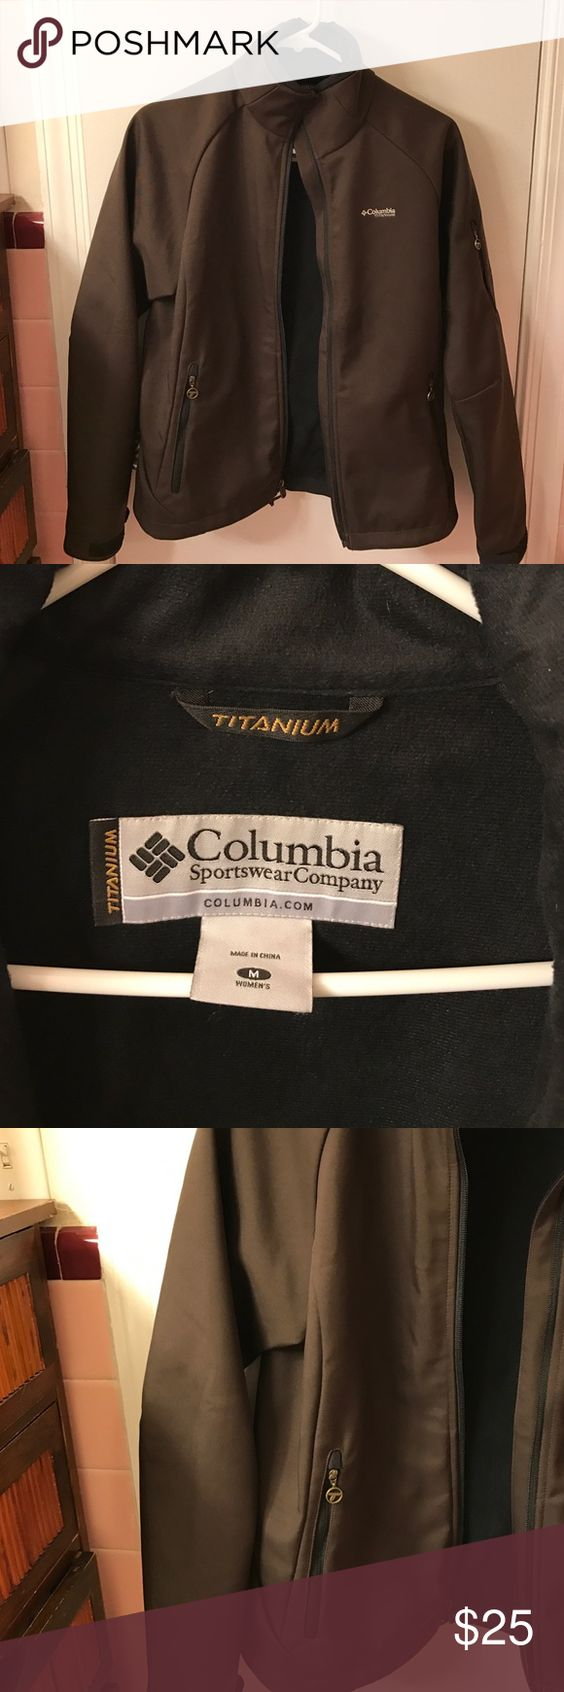 Columbia titanium jacket Really warm perfect condition Columbia  jacket/coat.   I have another one that North face that fits better so I never wear it.  It's a true medium and a little too small for me.  It's really in like new condition I think I wore a few times. Columbia Jackets & Coats Utility Jackets